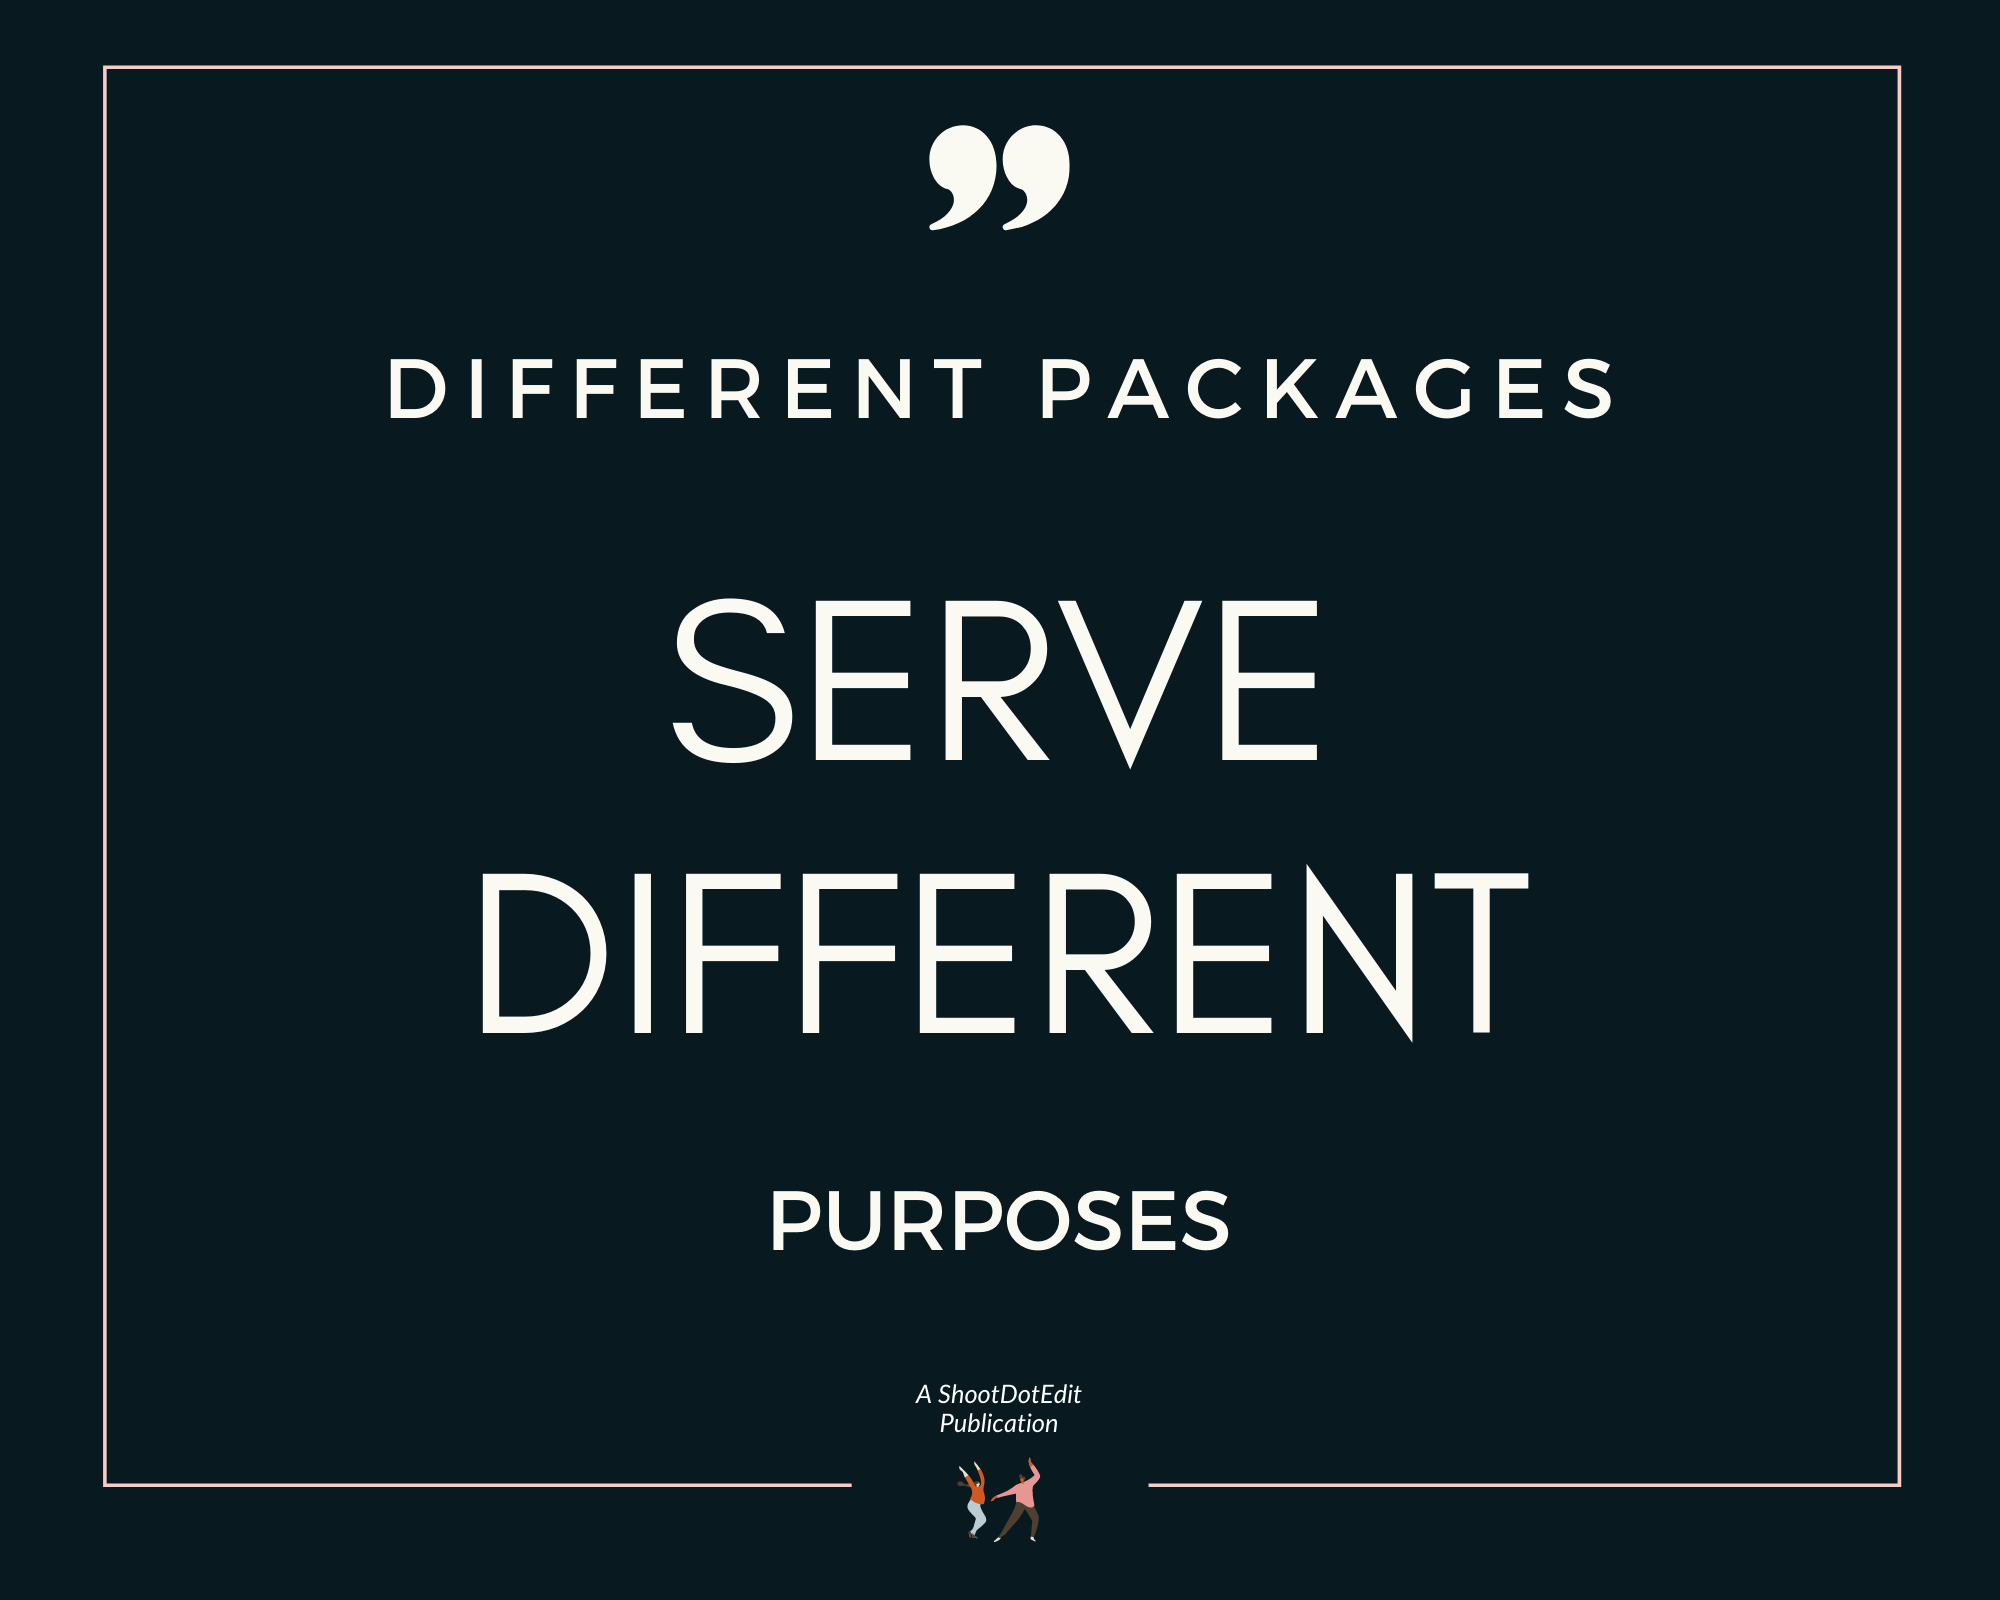 Infographic - Different packages serve different purposes